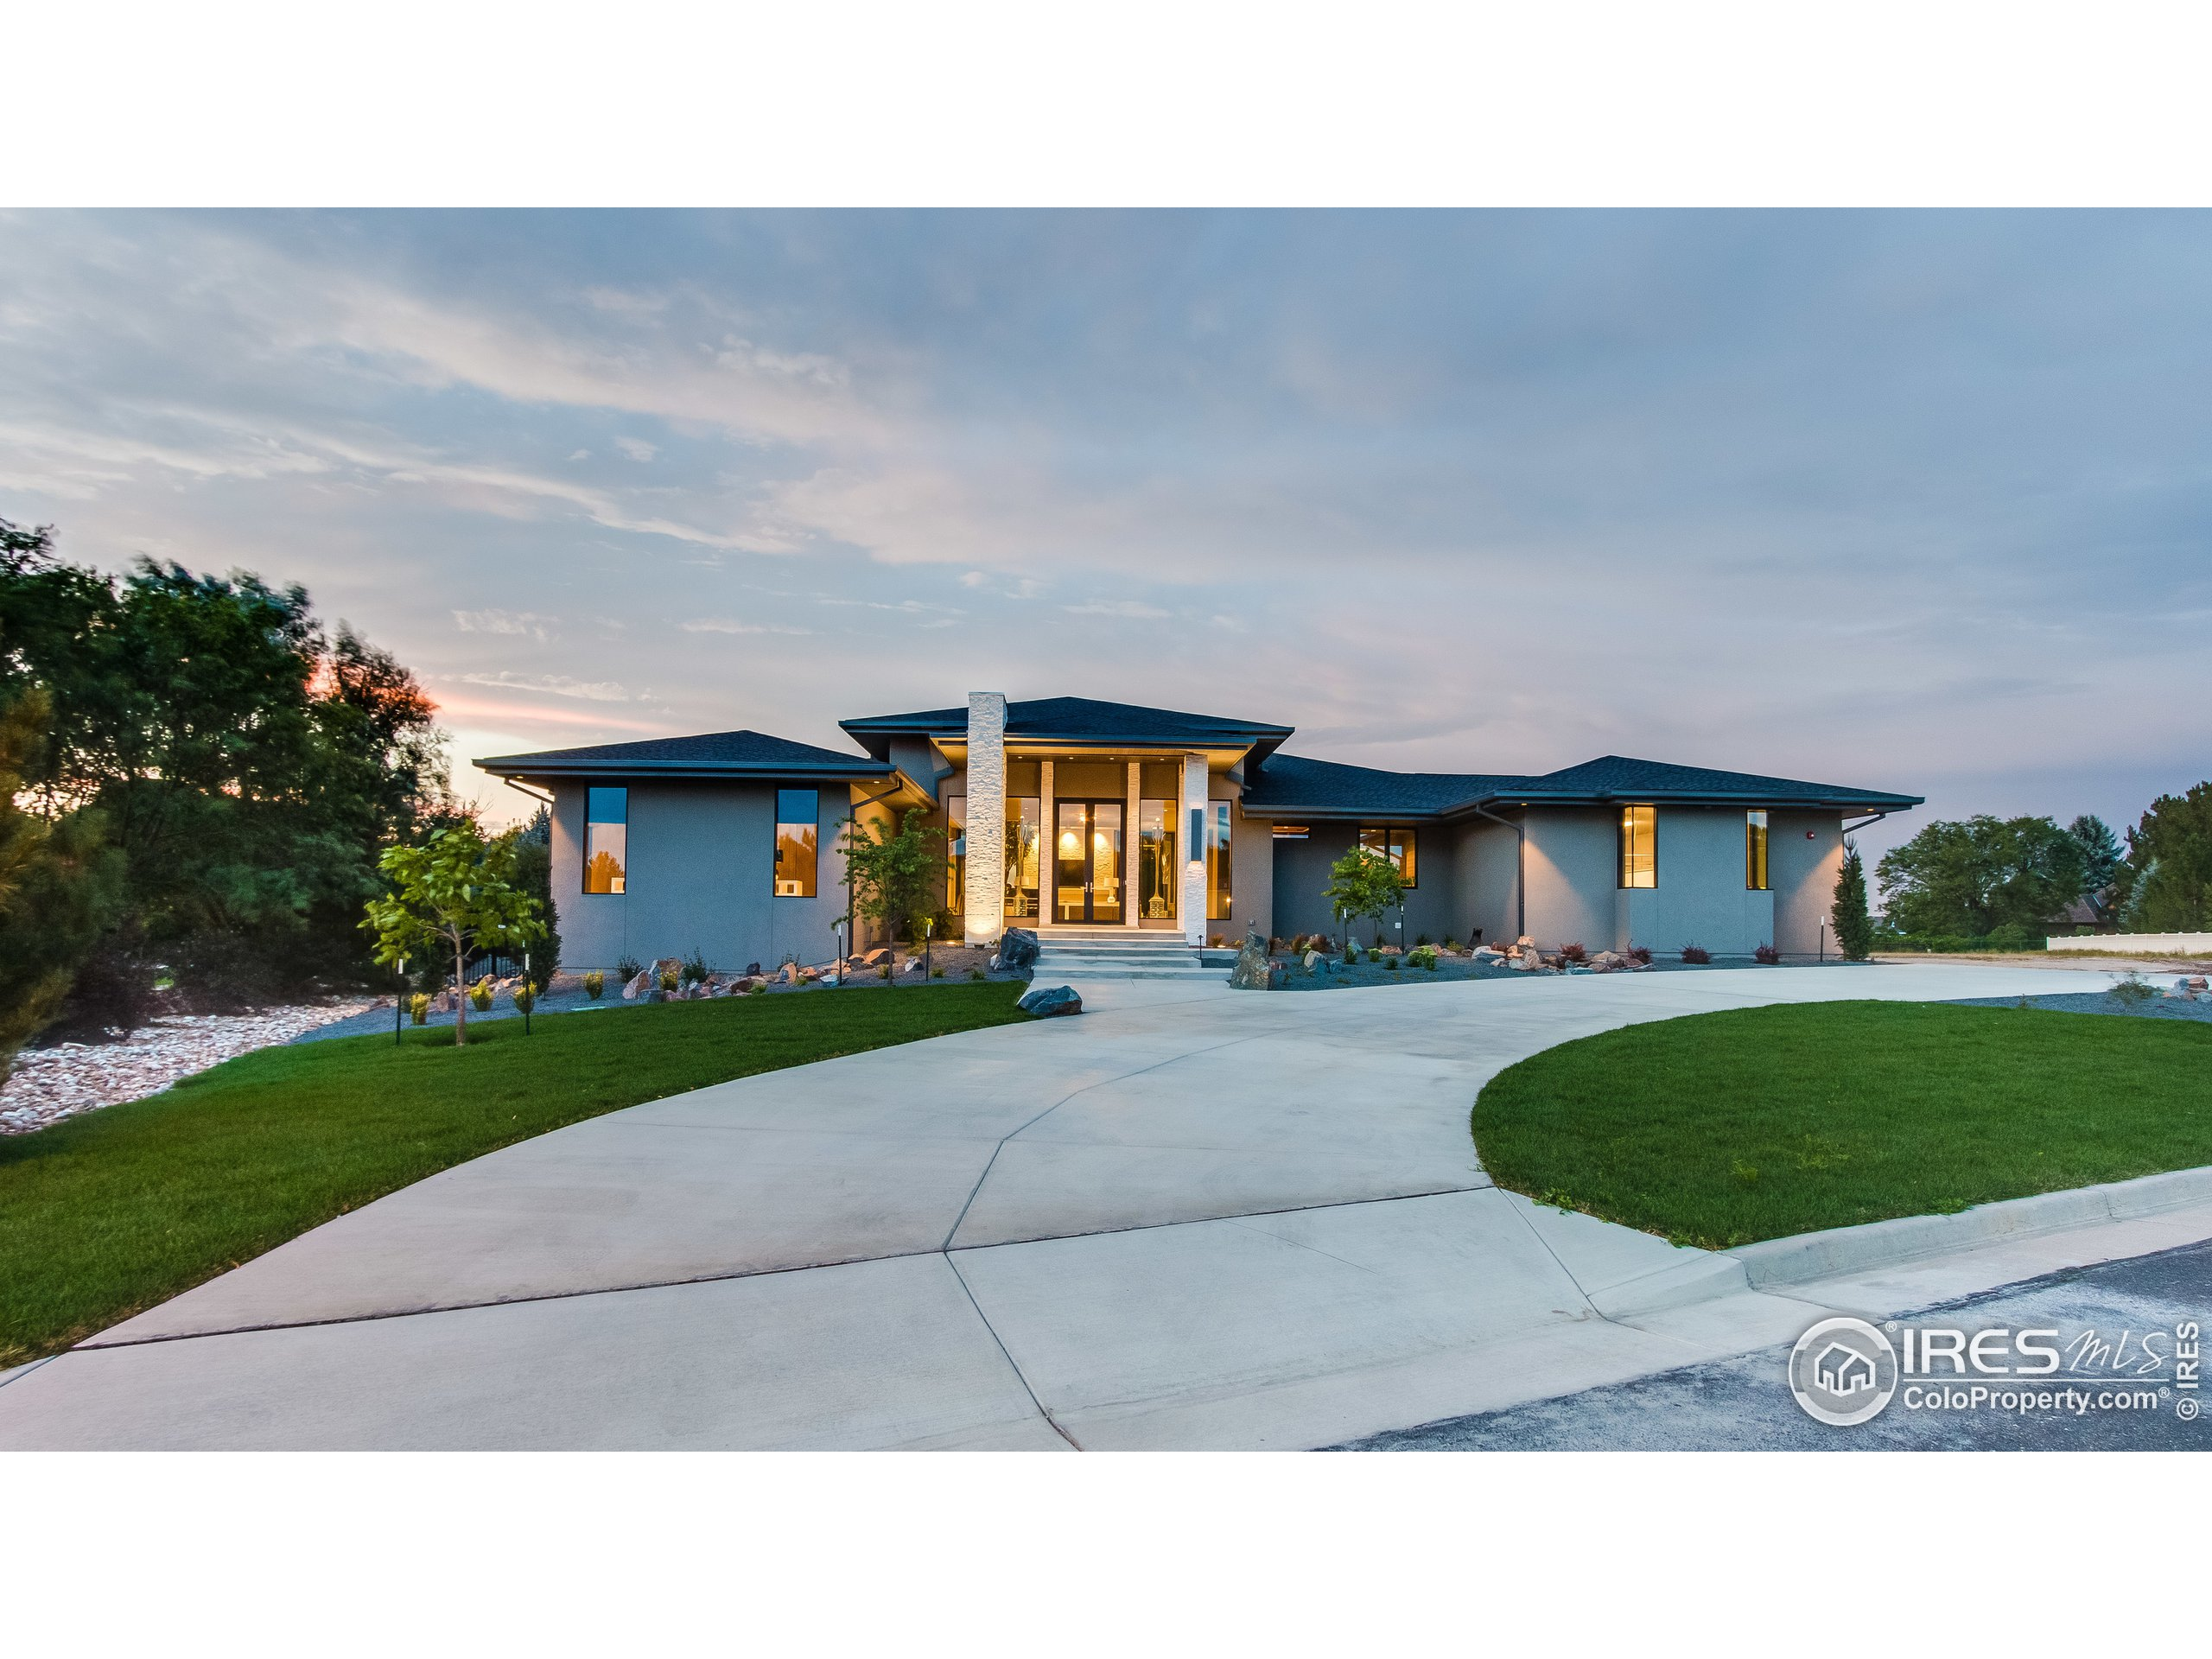 3943 19th St Ln, Greeley, CO 80634